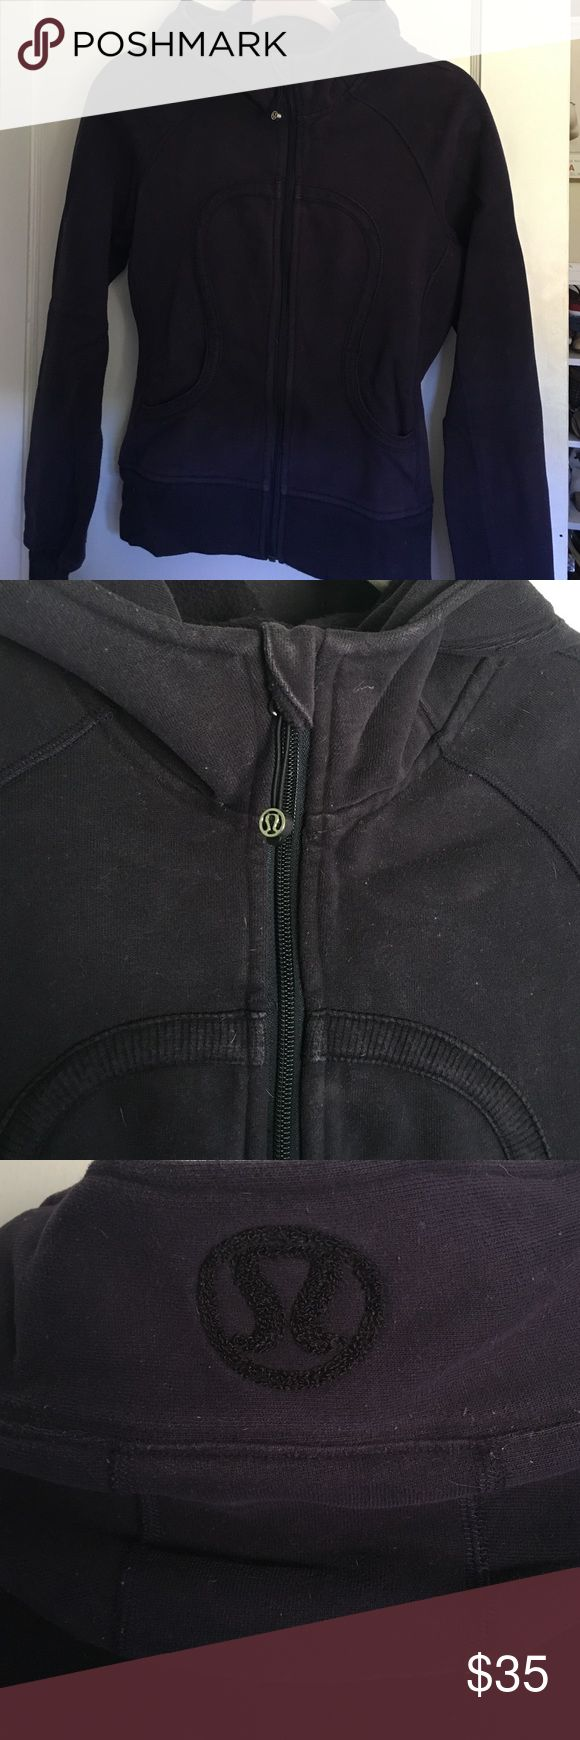 Lululemon scuba hoodie lululemon scuba hoodie, size 6, color is a worn in deep purple. good condition but does have more of a faded look (even when brand new), price reflects wear. cozy! lululemon athletica Sweaters